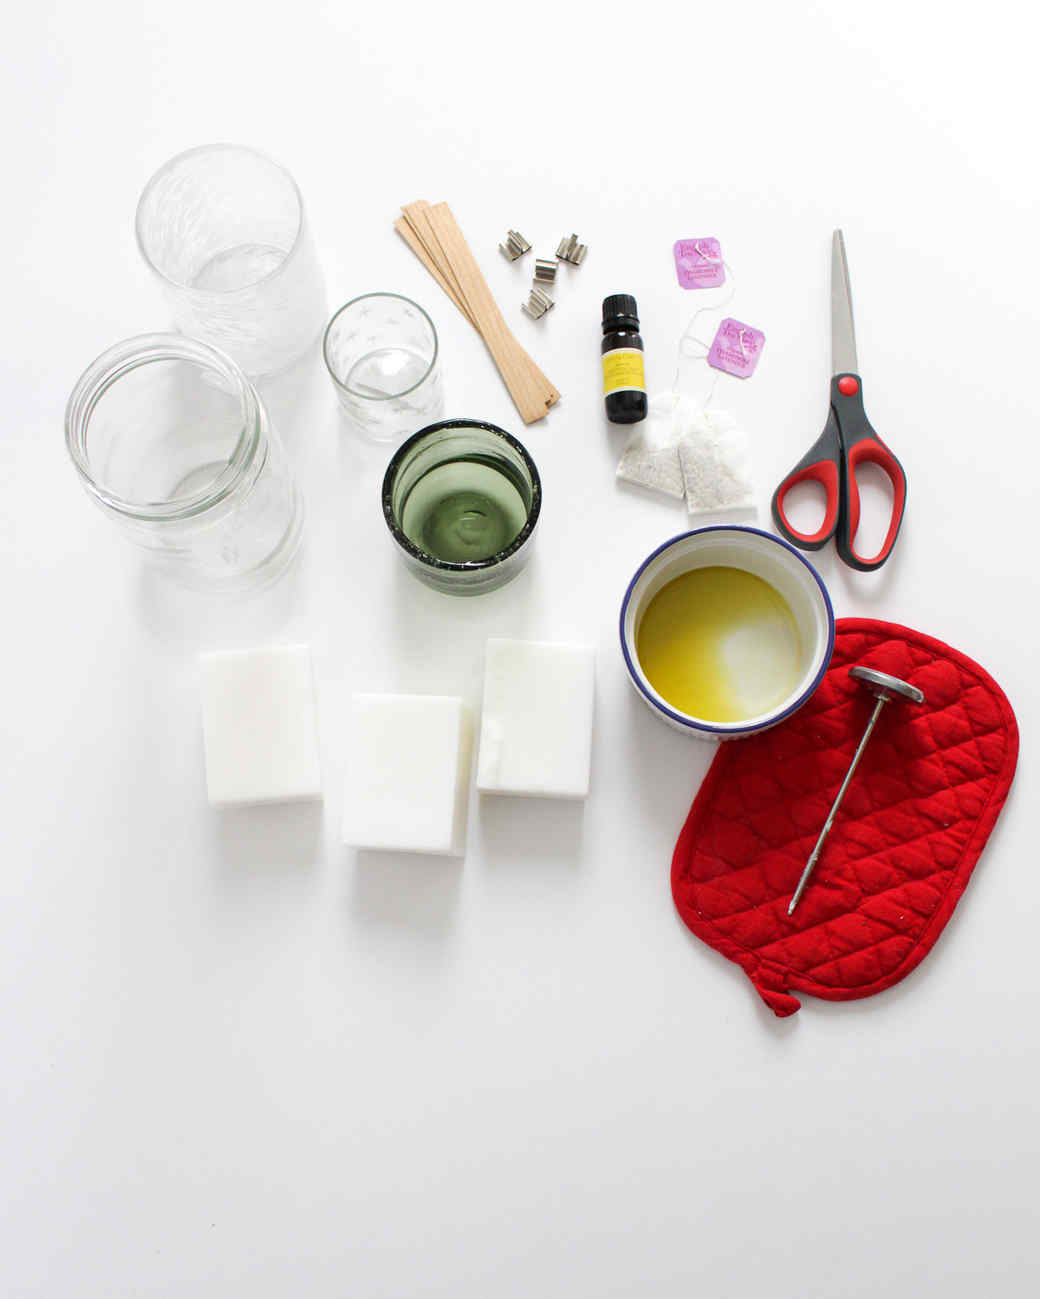 diy tea scented candle materials